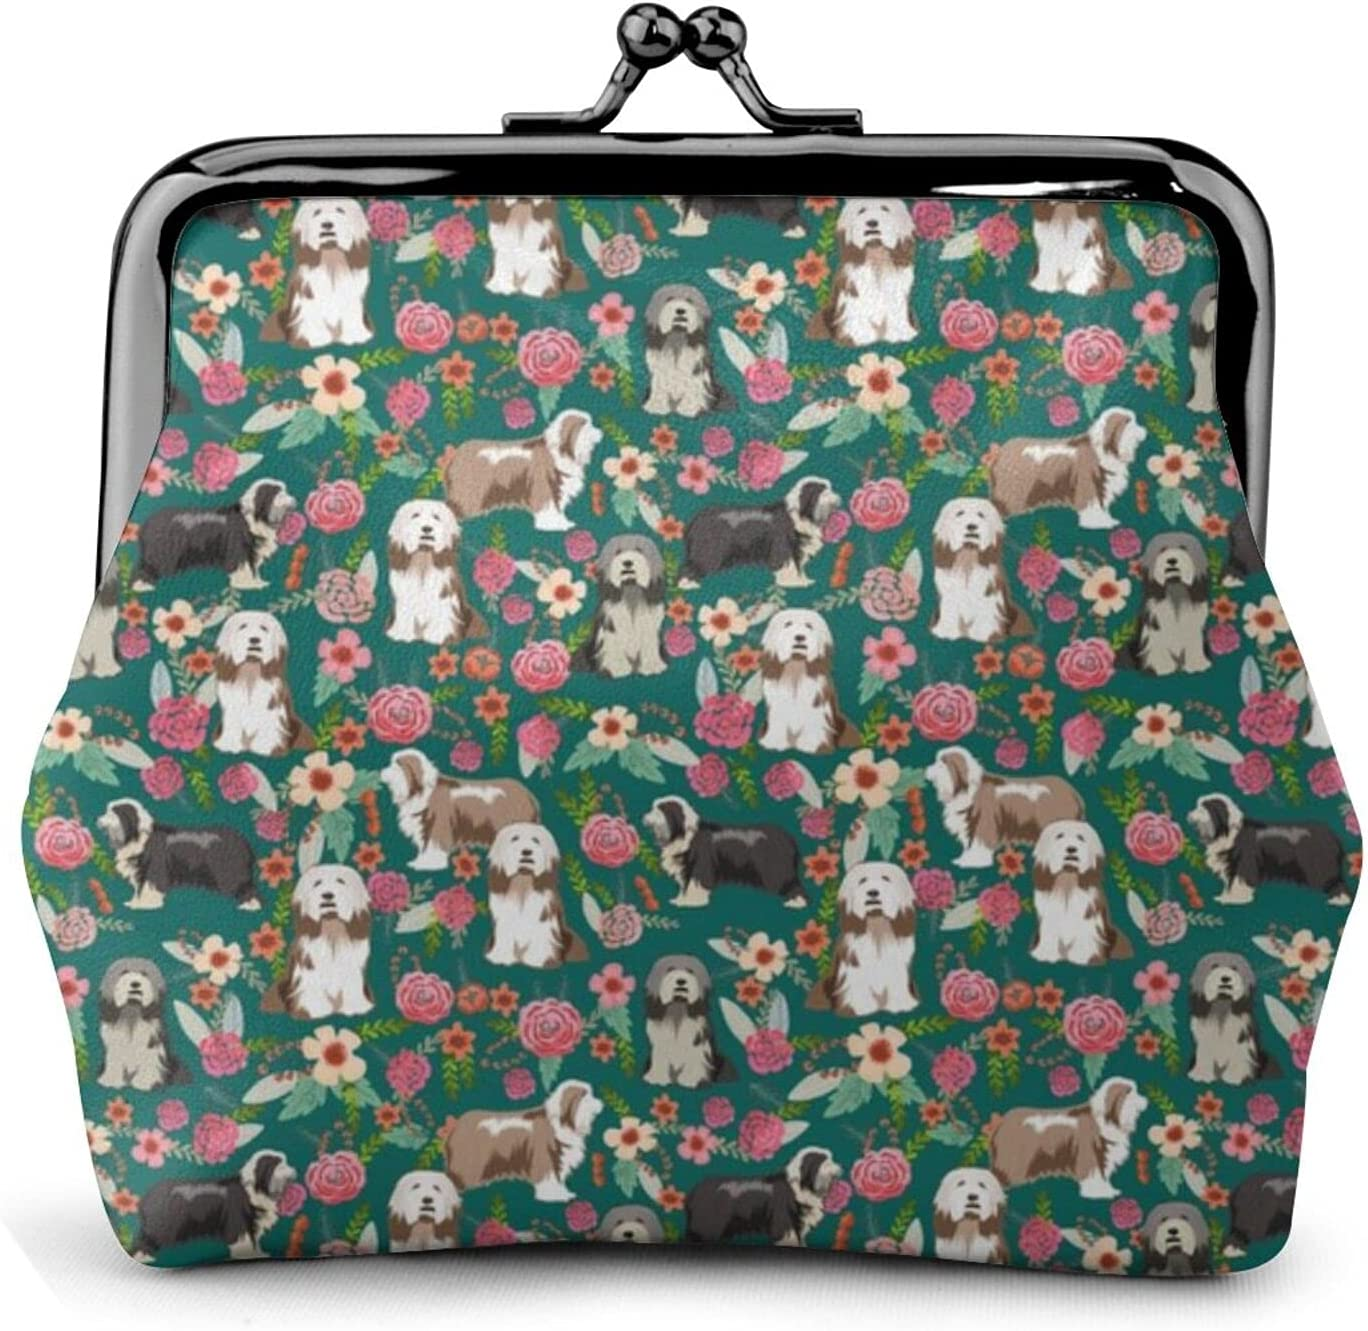 Bearded Collie Floral 302 Coin Purse Retro Money Pouch with Kiss-lock Buckle Small Wallet for Women and Girls